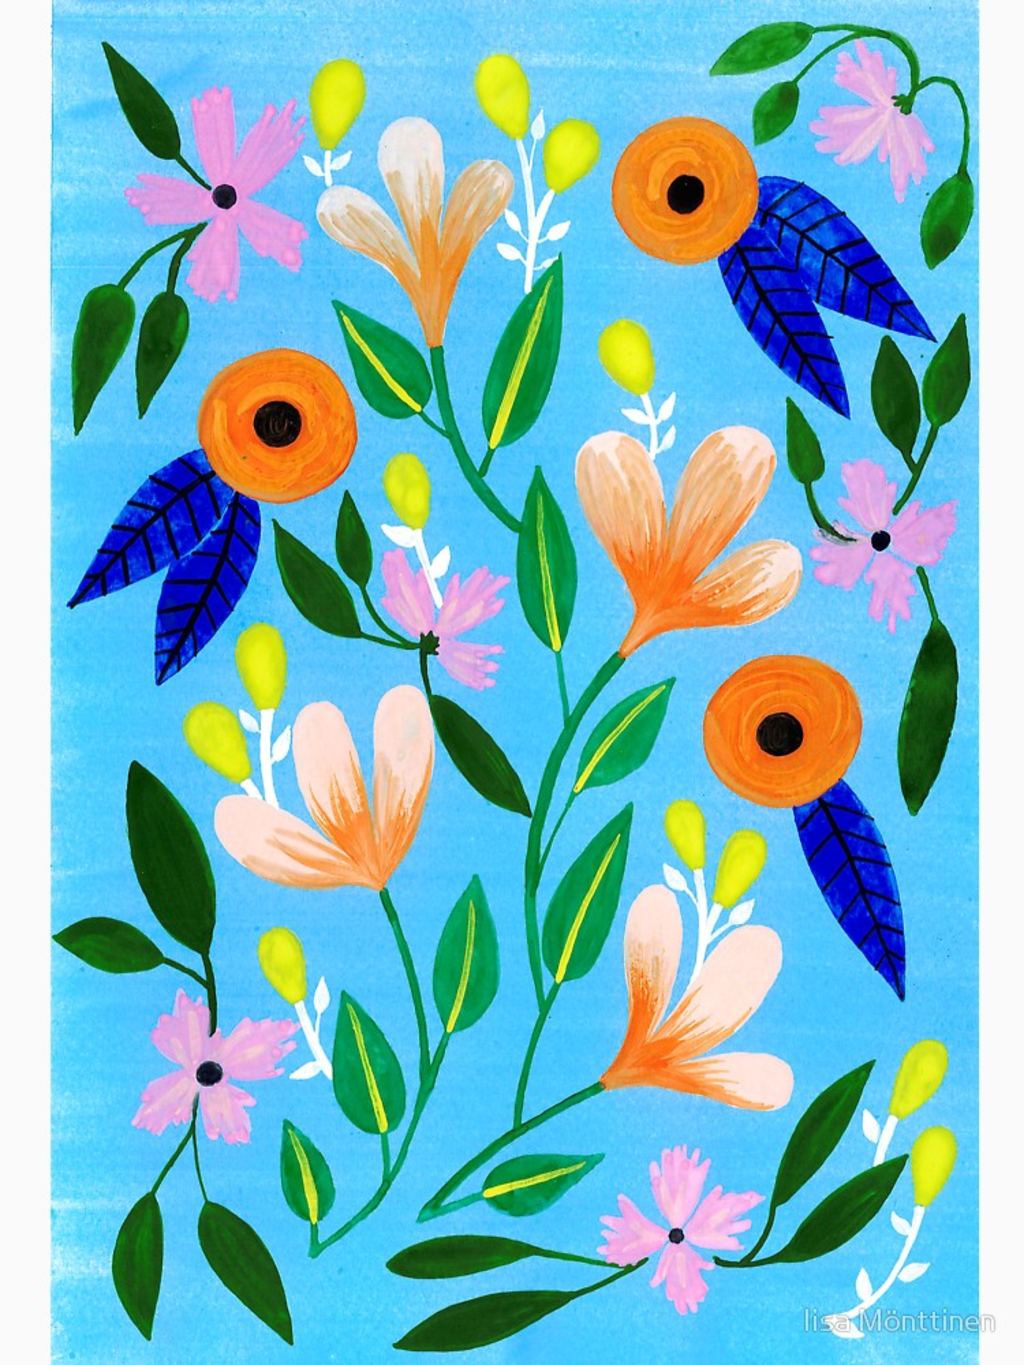 RedBubble: Flowers on blue